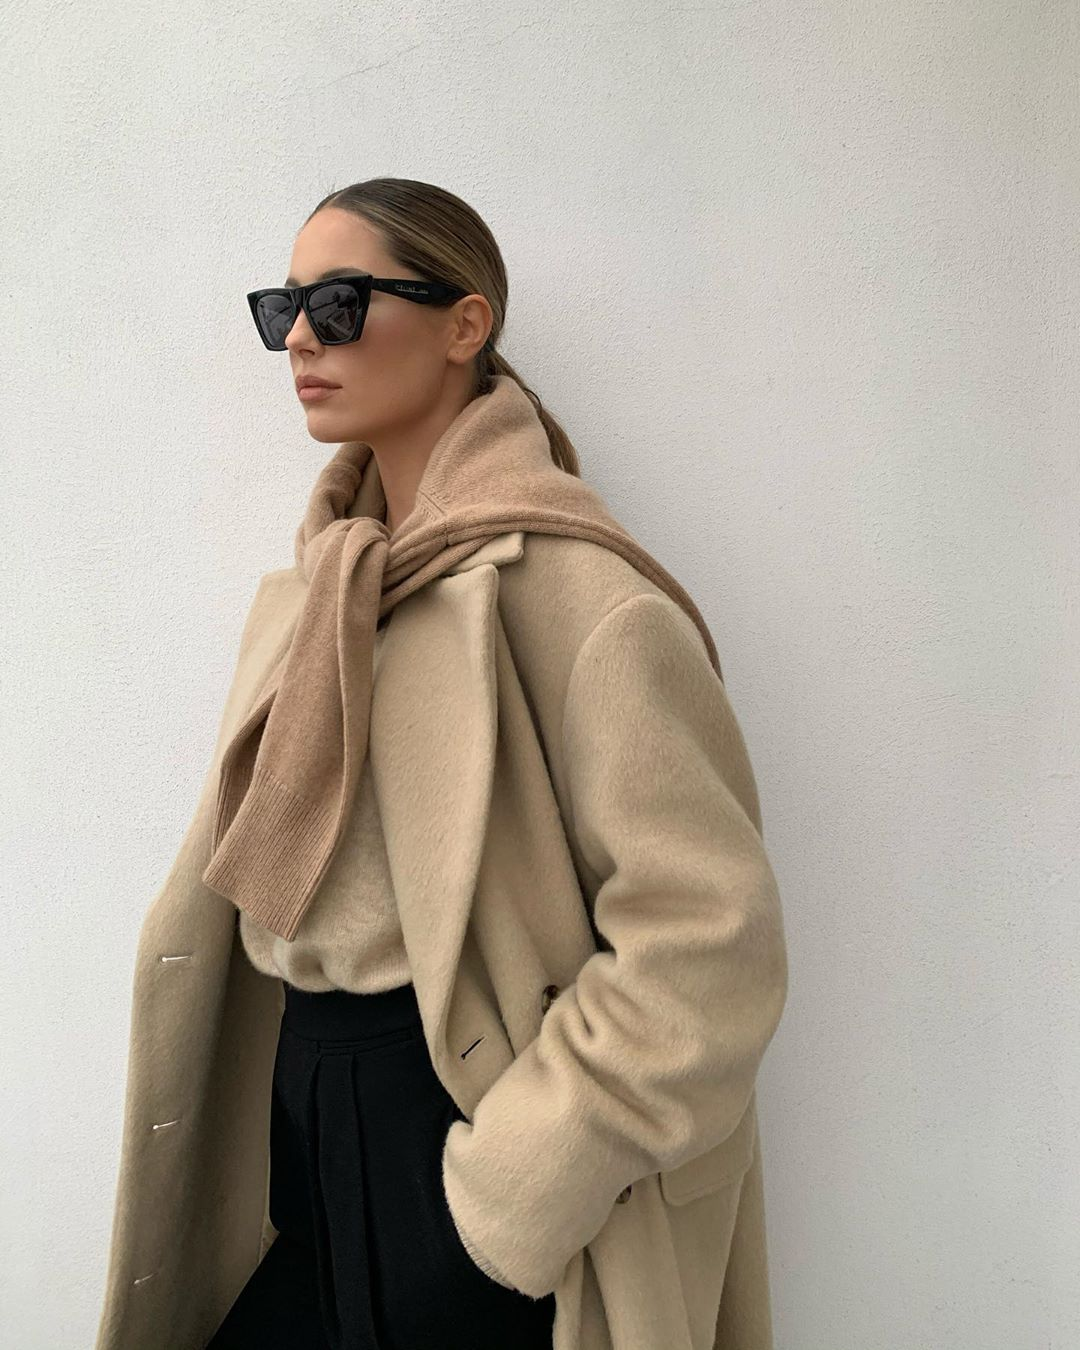 Minimalist Winter Outfit Idea — @mathildegoehler in square cat-eye sunglasses, a beige coat, camel sweater tied over the shoulders, and black pants